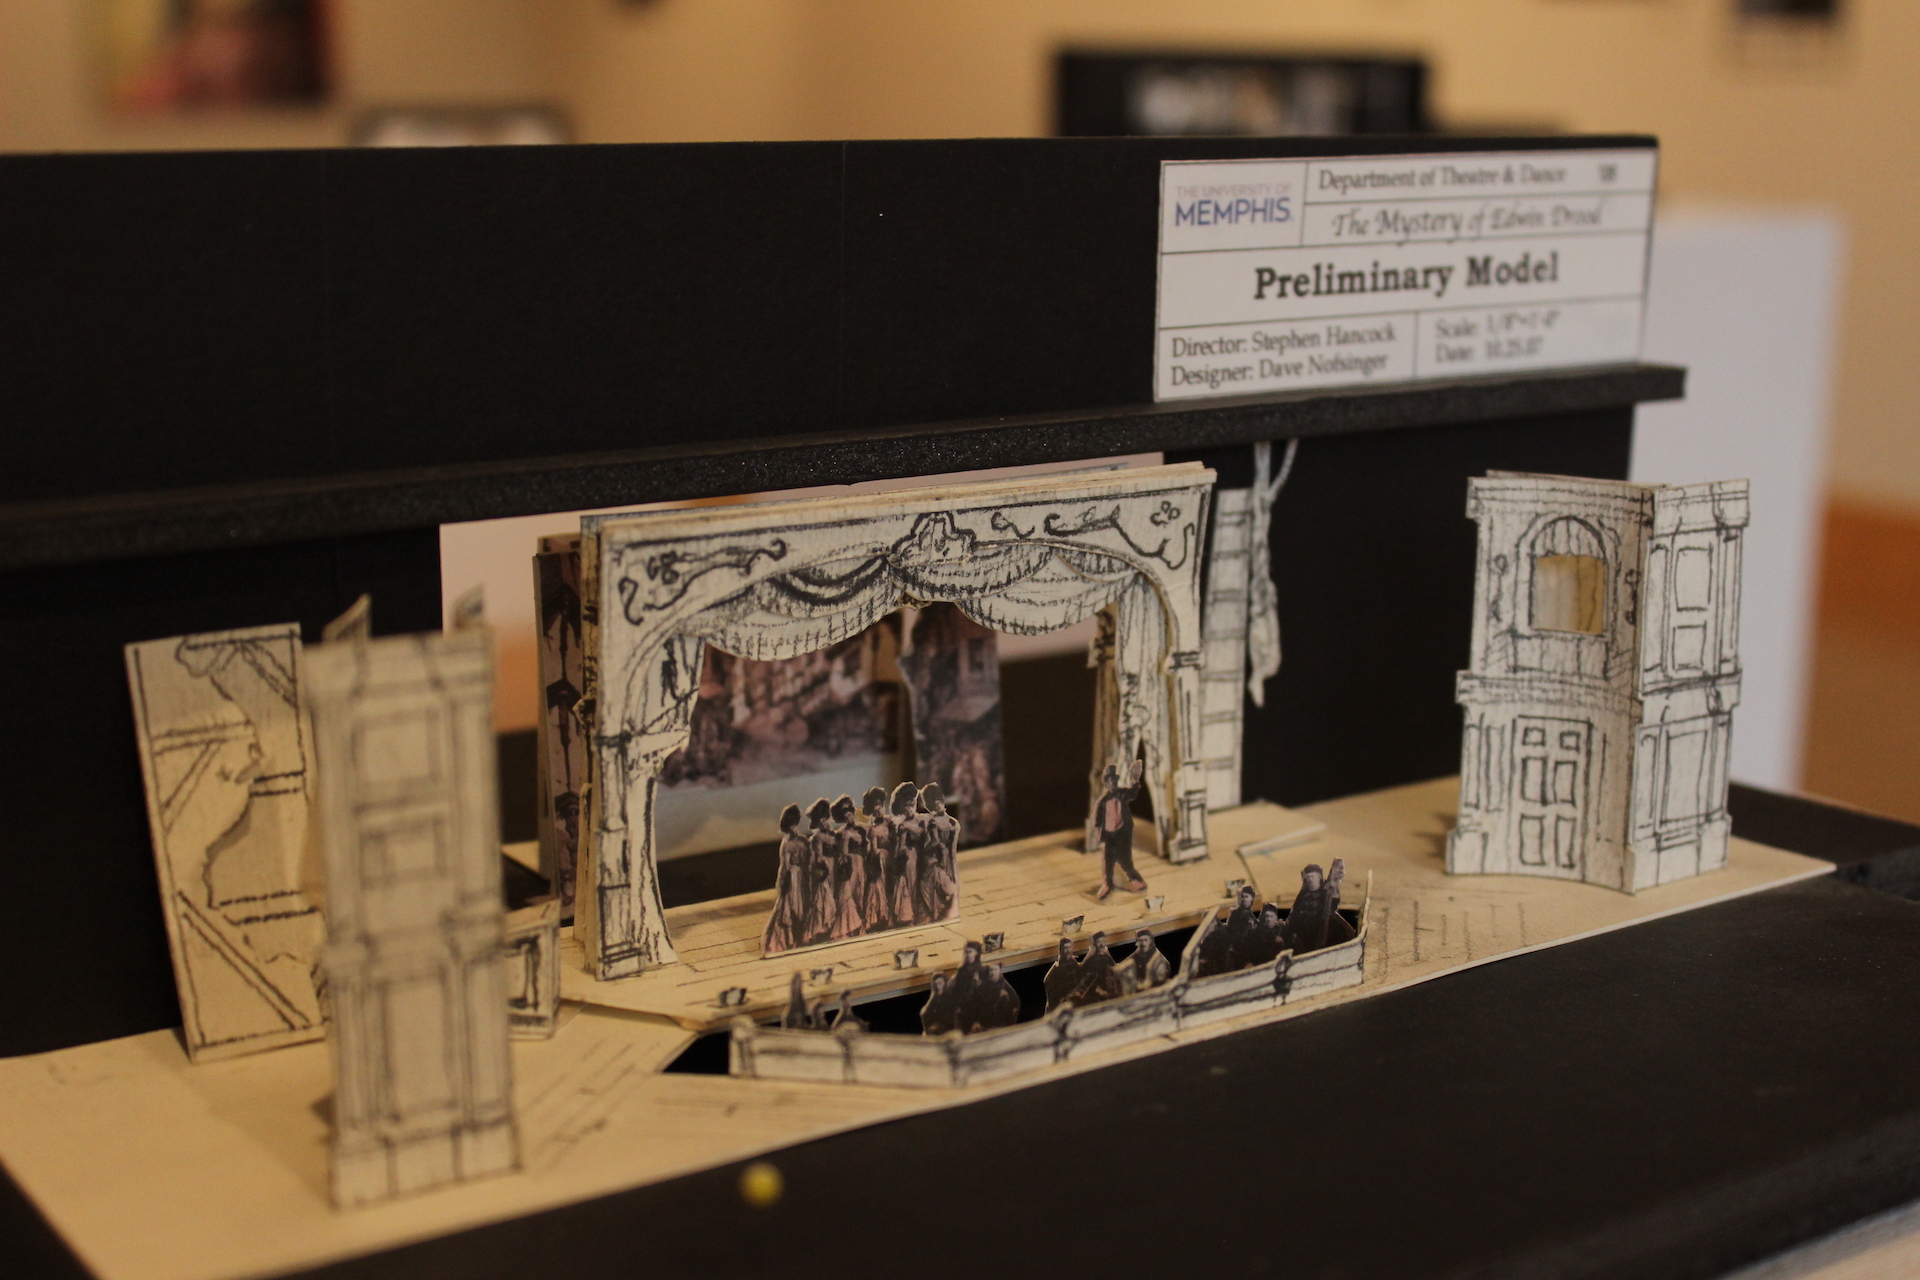 A paper model of a stage and theatrical production